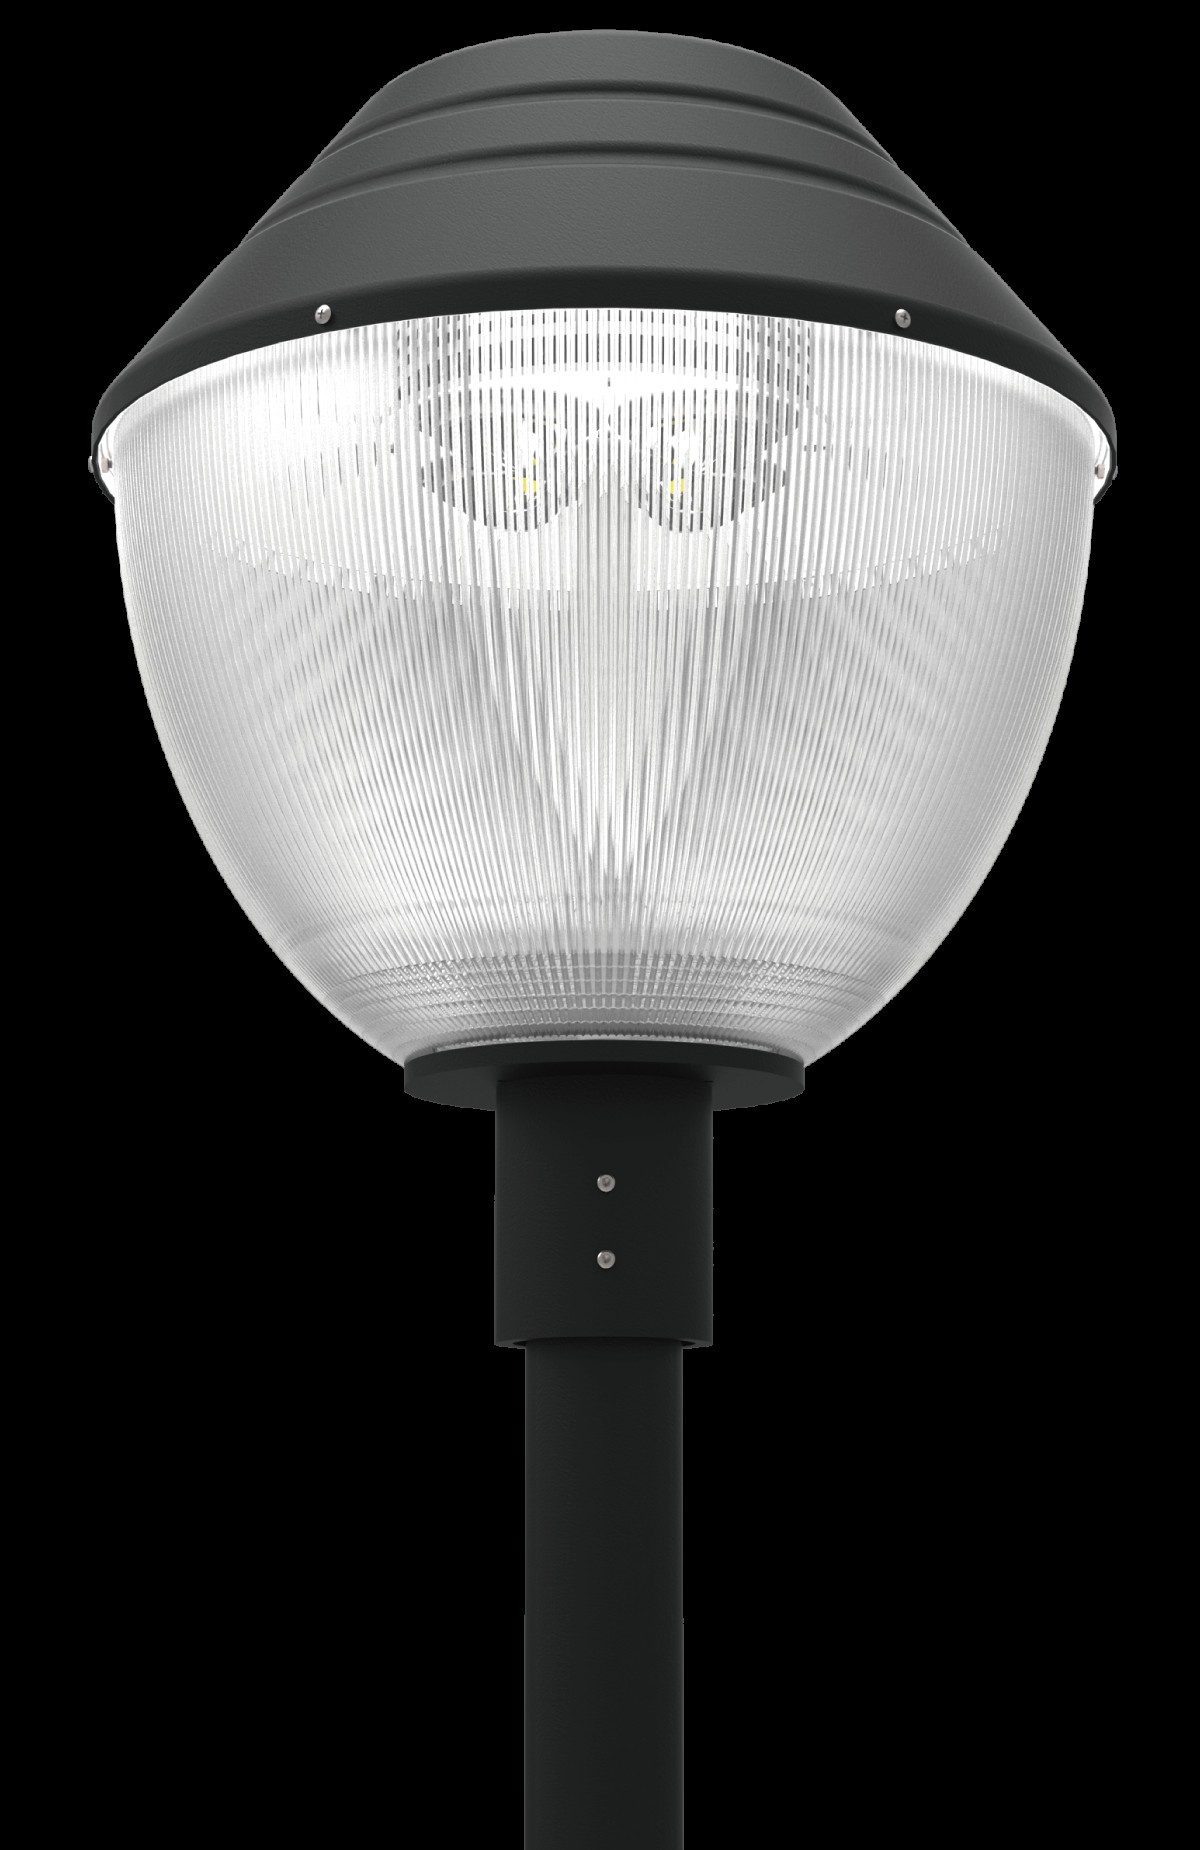 Best ideas about Led Outdoor Lights . Save or Pin LED Post Top Light Fixtures LED Outdoor Light Fixtures Now.